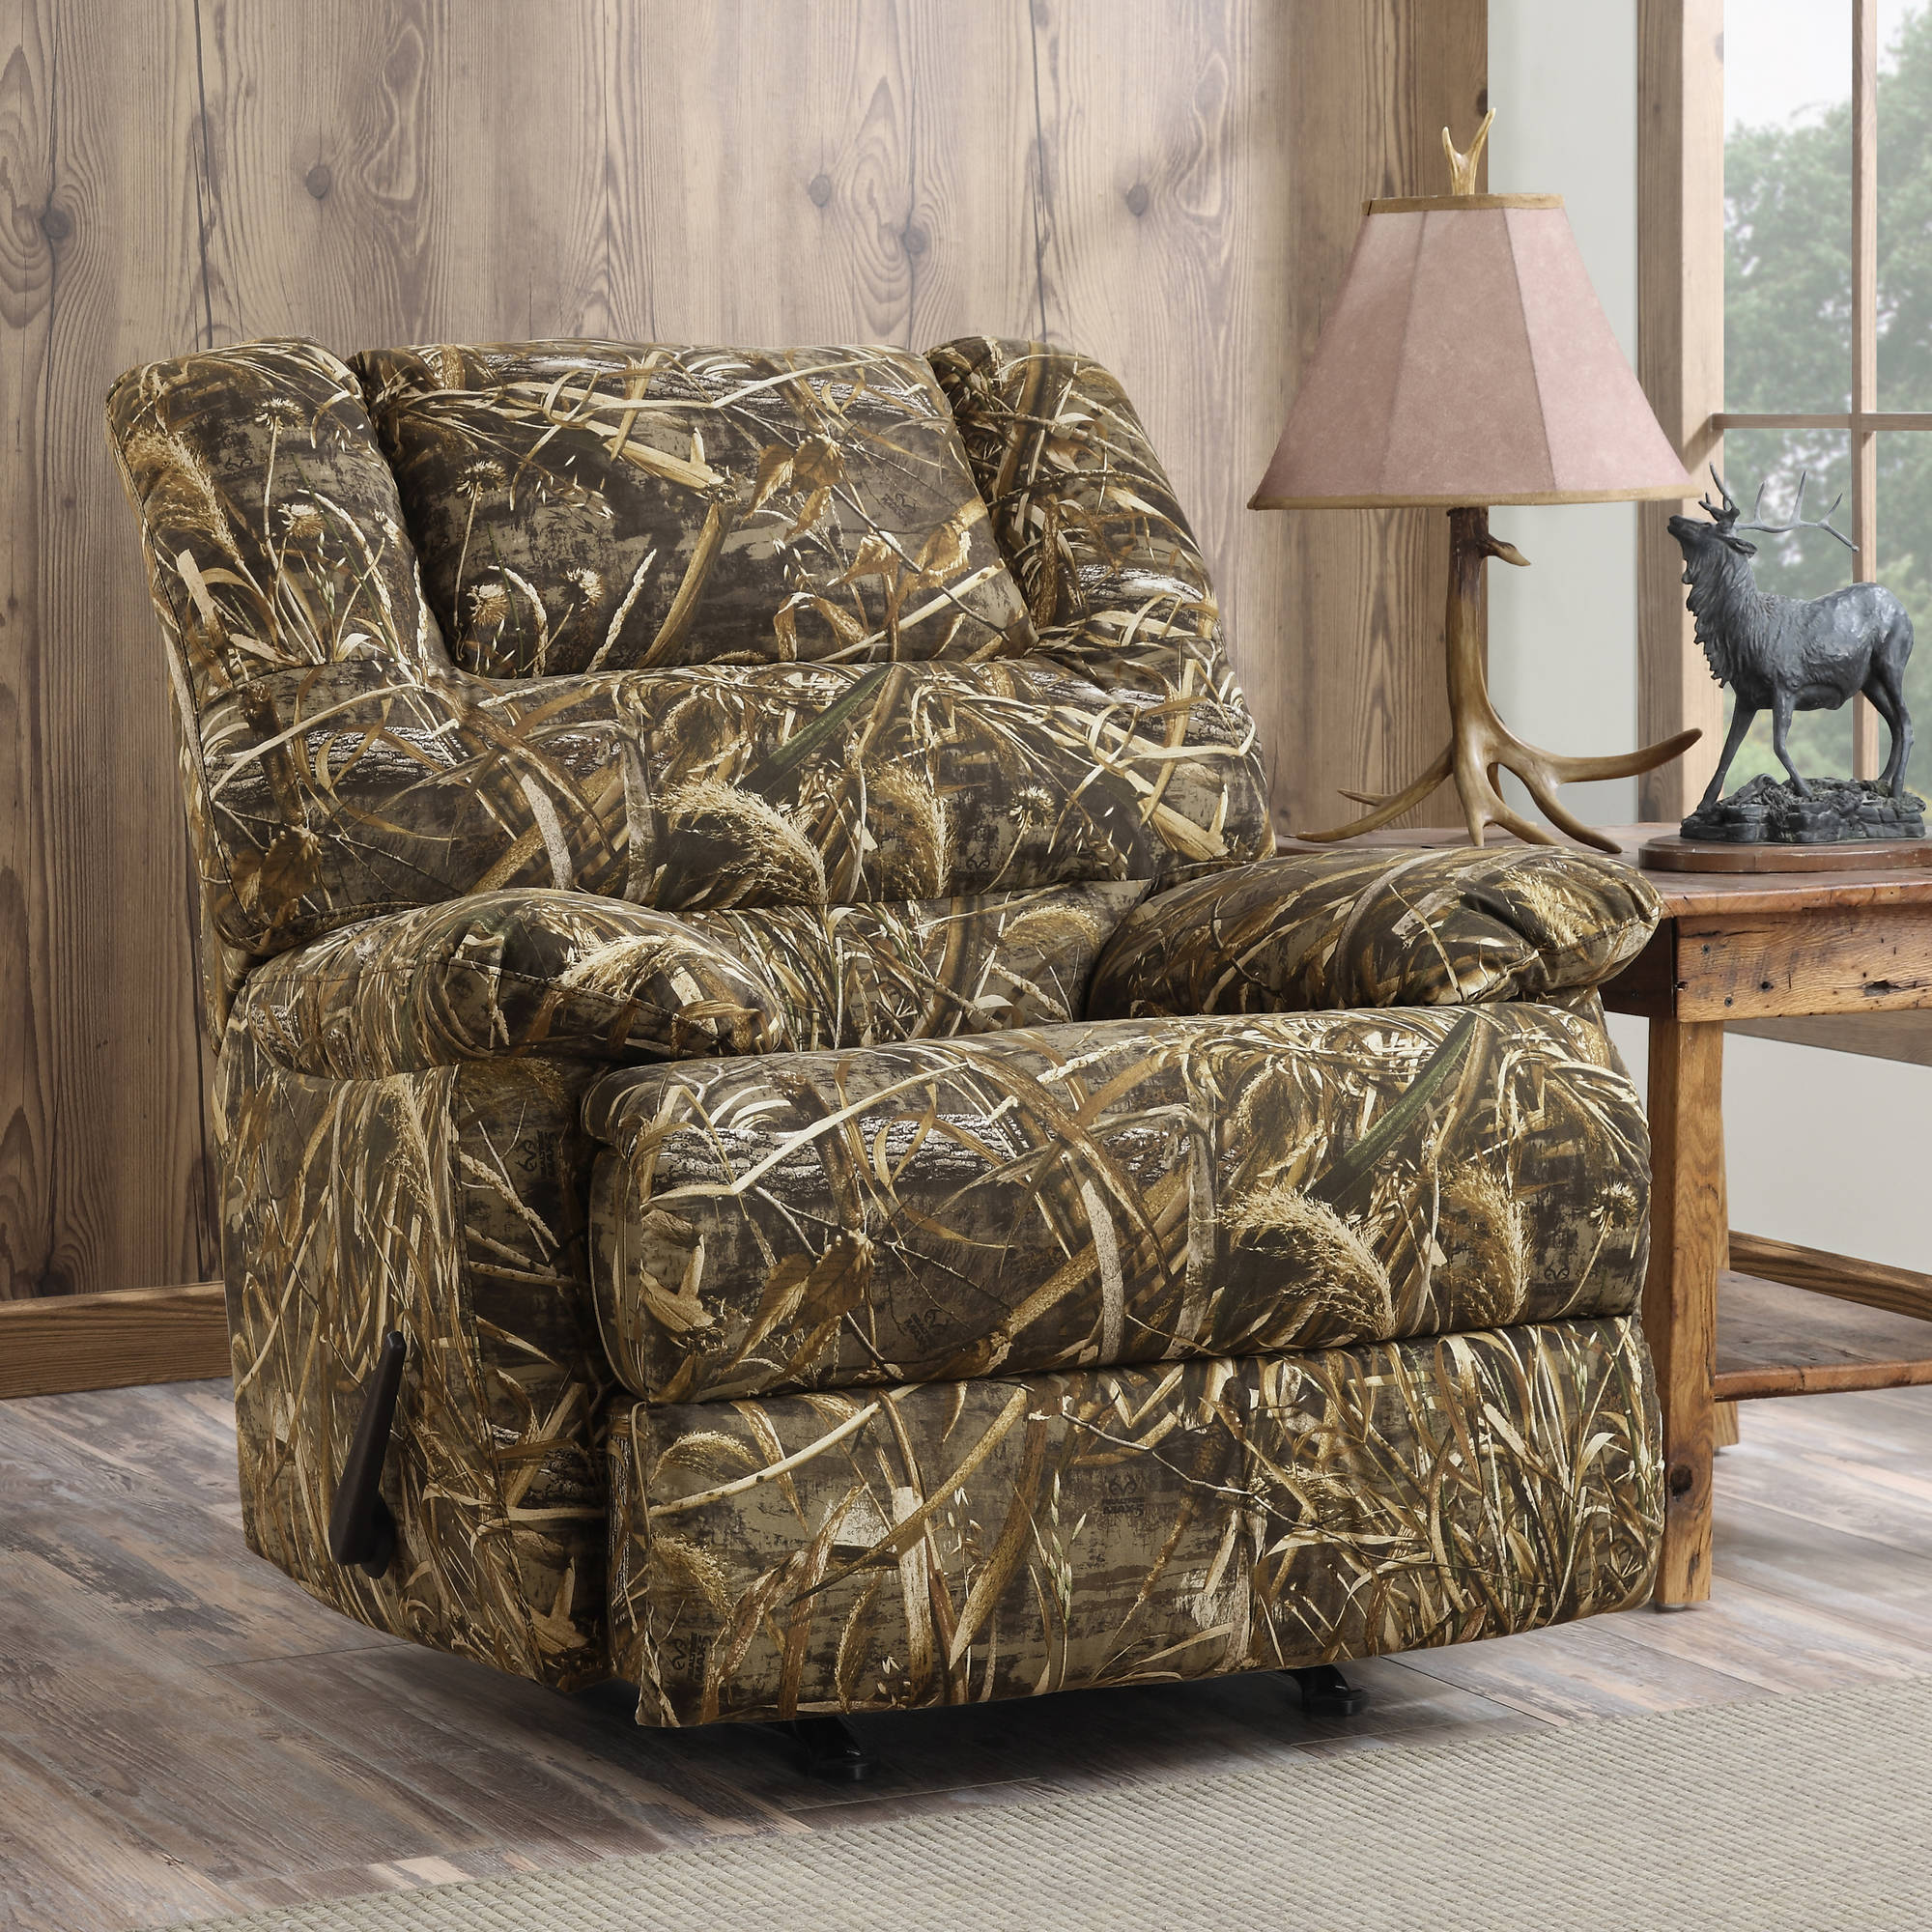 Dorel Living Realtree Camouflage Deluxe Recliner Camo